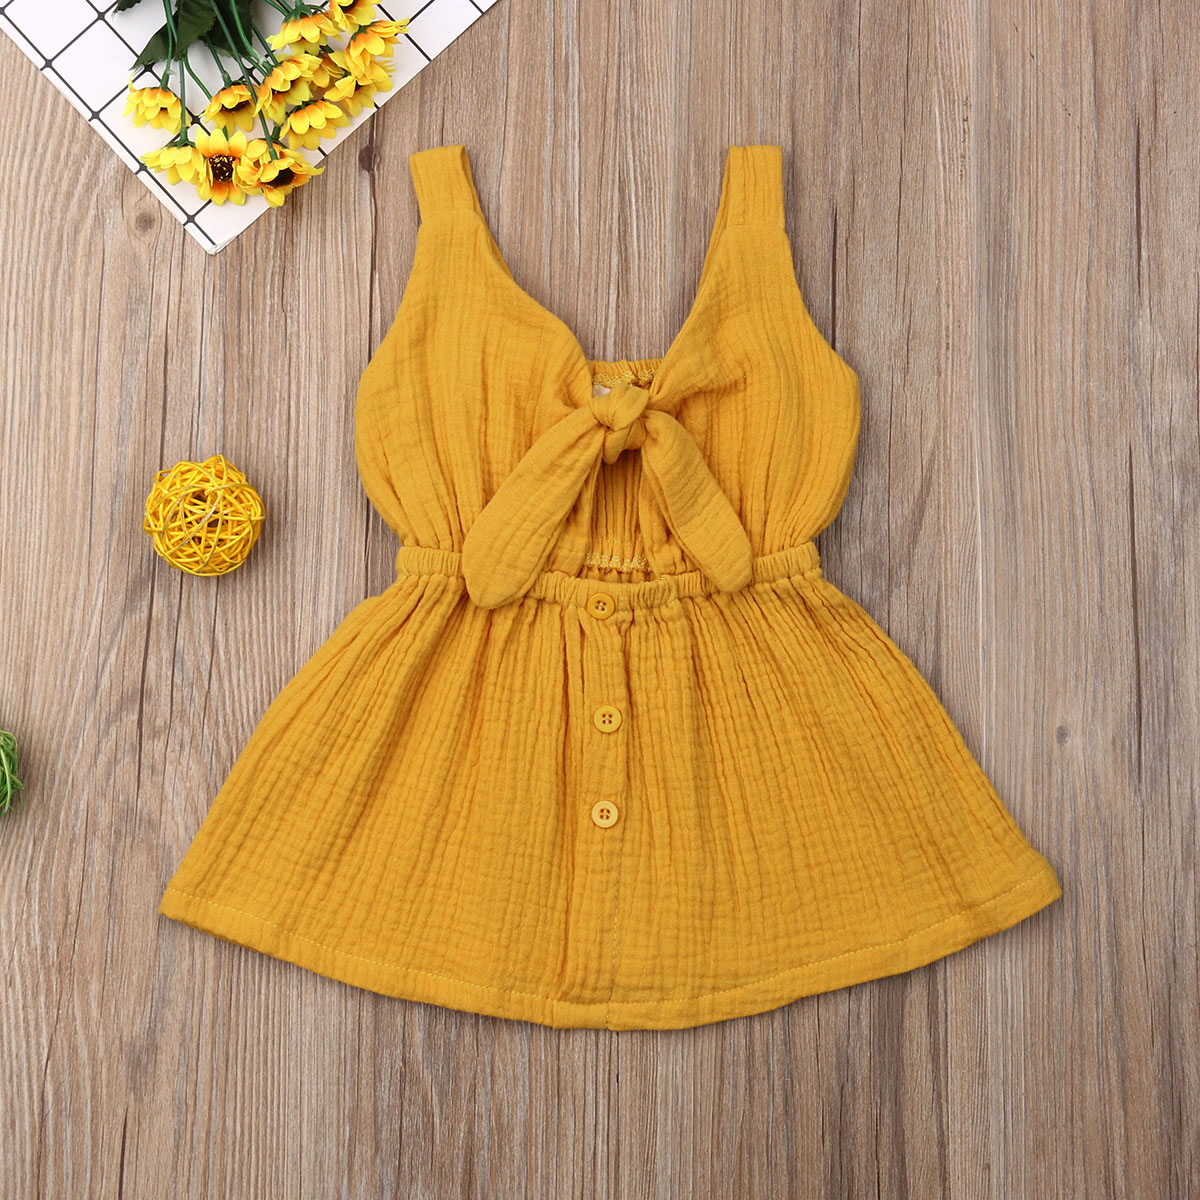 Pudcoco Summer Toddler Baby Girl Clothes Solid Color Sleeveless Strap Ruffle Cotton Dress Button Bowknot Casual Sundress